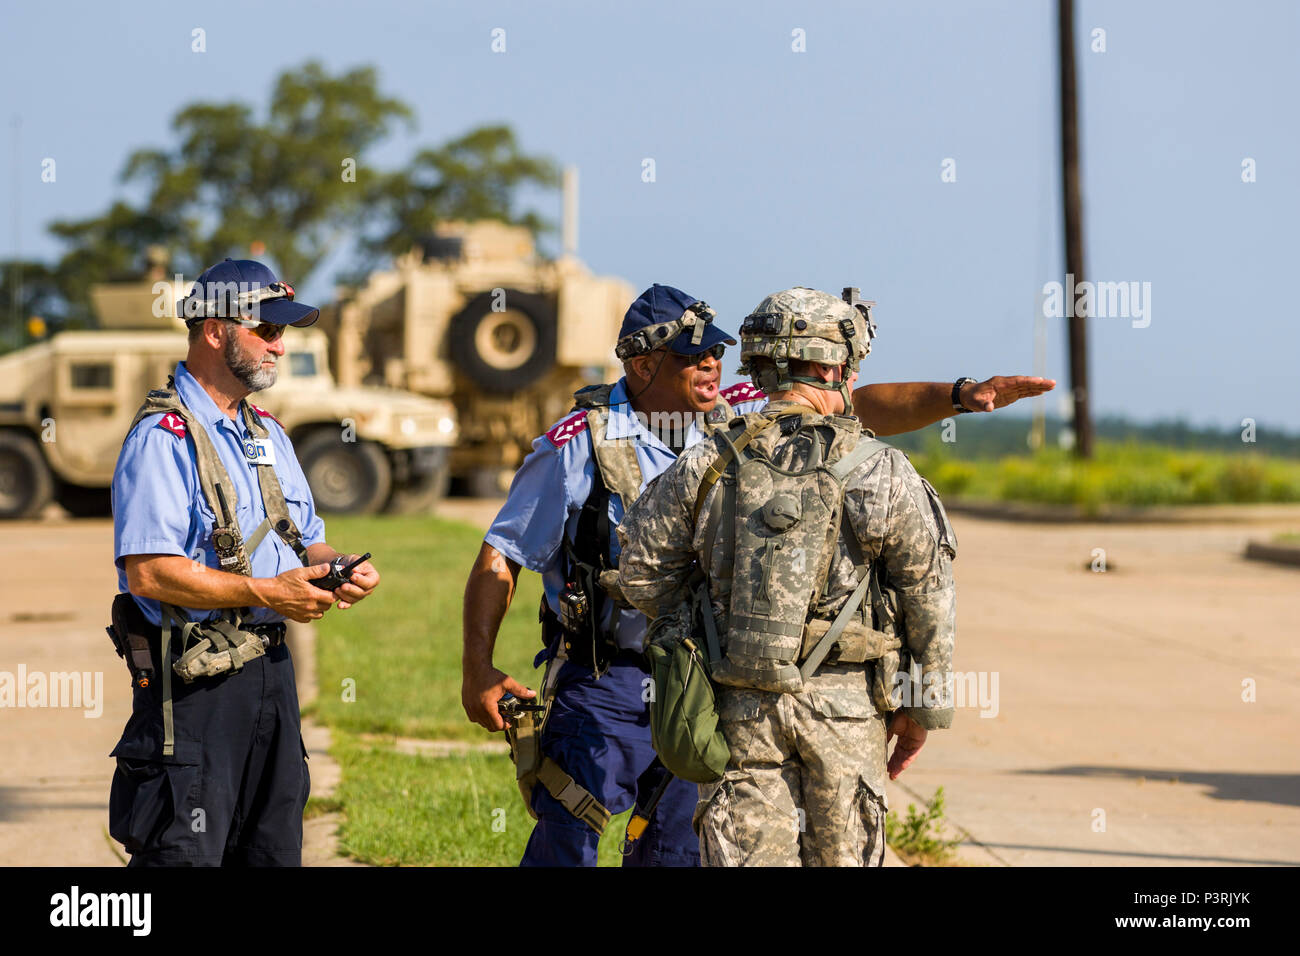 A Soldier with the 27th Infantry Brigade Combat Team speaks to police roleplayers in the fictional town of Dara Lam at the Joint Readiness Training Center, Ft. Polk, La., July 23, 2016.    Approximately 3,000 Soldiers from New York joined 2,000 other state Army National Guard units, active Army and Army Reserve troops as part of the 27th Infantry Brigade Combat Team task force.  The Soldiers are honing their skills and practicing integrating combat operations ranging from infantry troops engaging in close combat with an enemy to artillery and air strikes, July 9-30, 2016. (U.S. Army National G Stock Photo